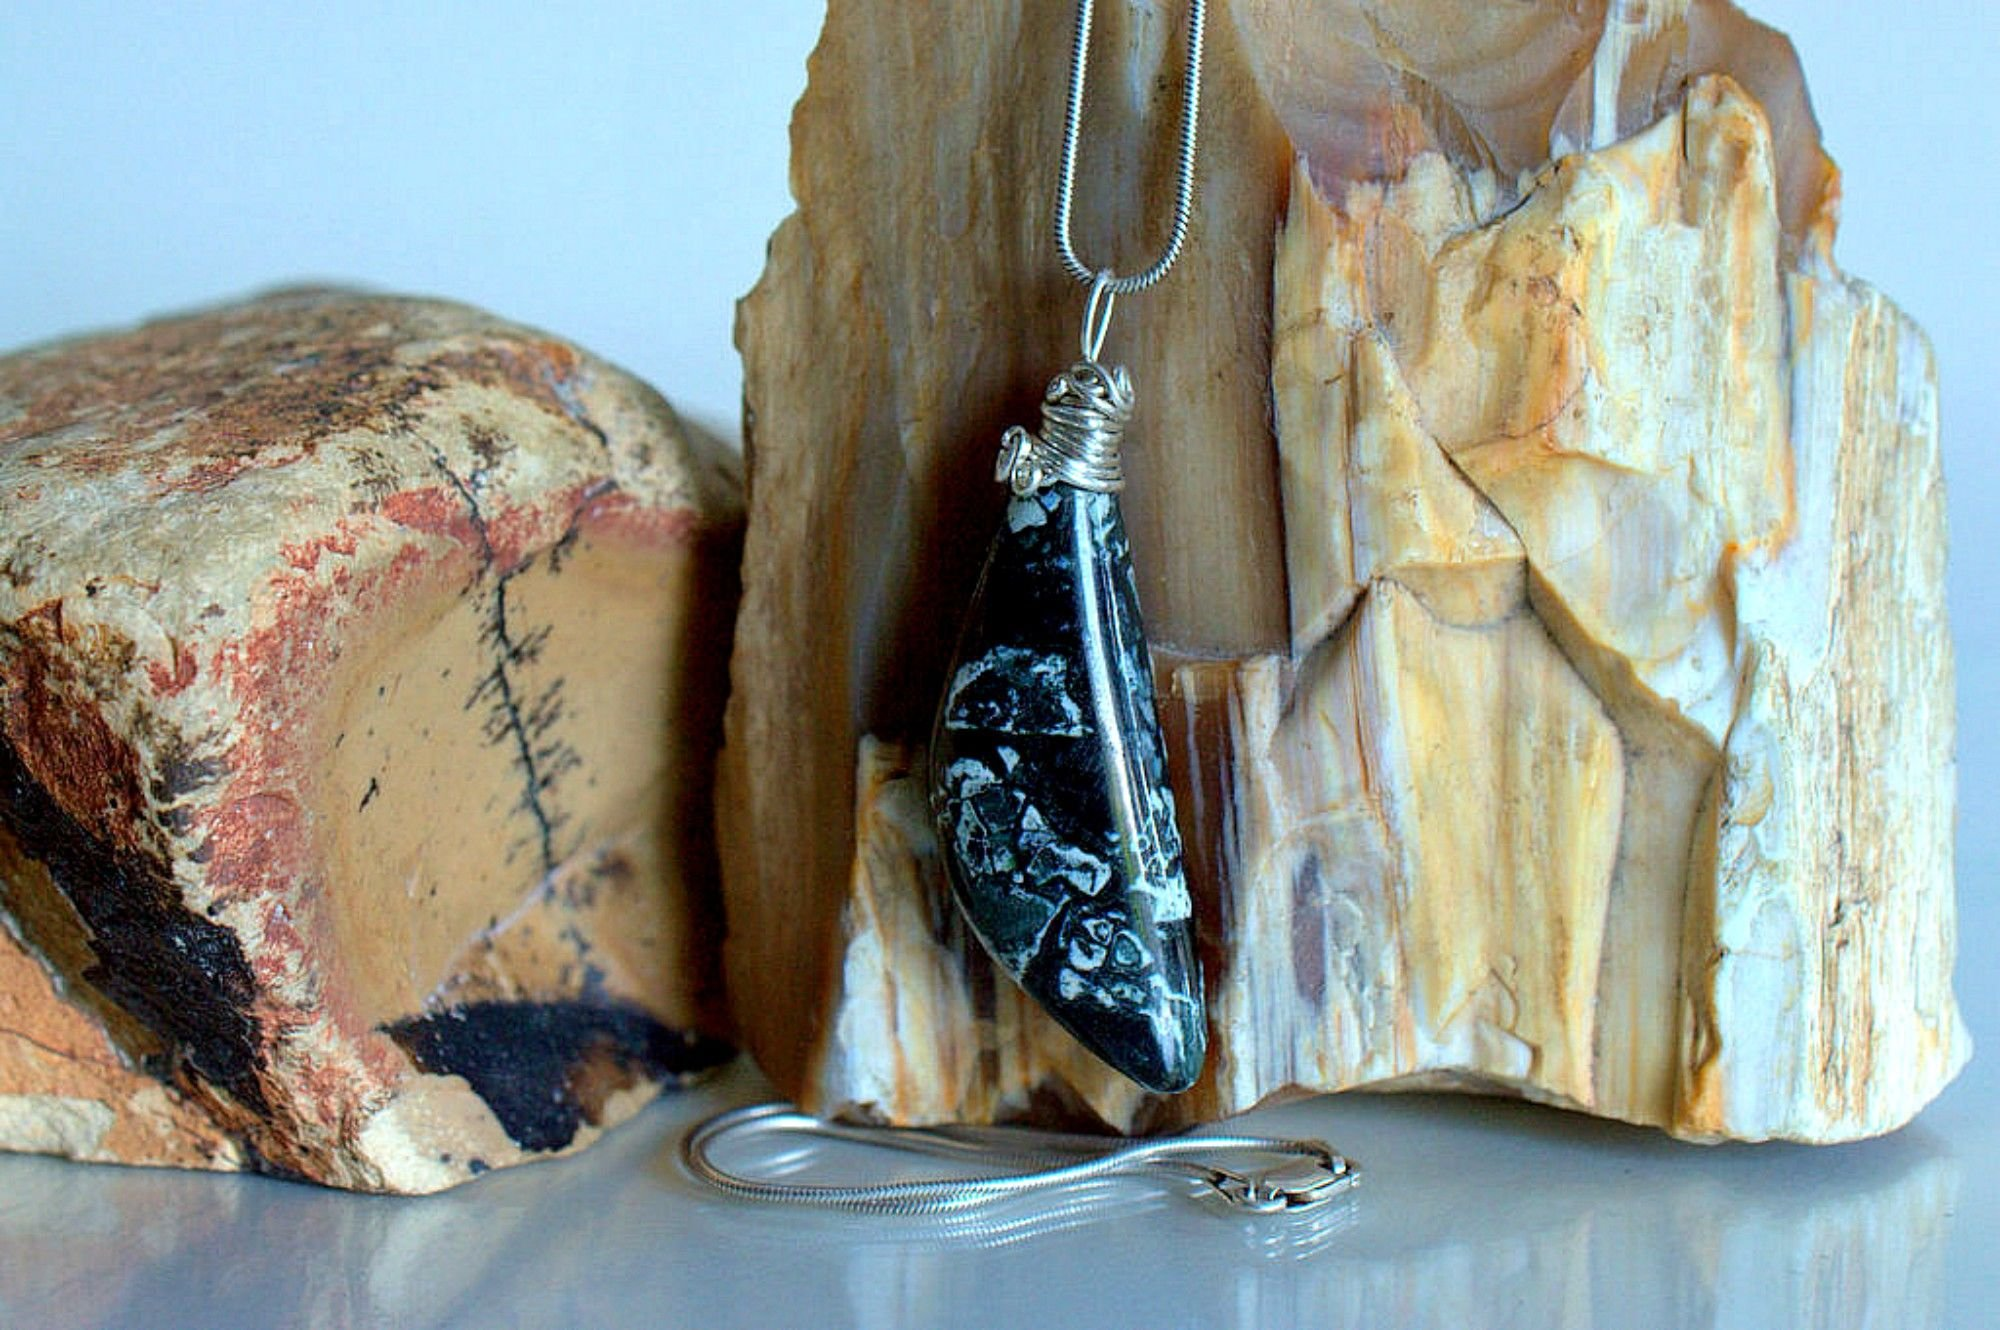 Canadian types of jasper, Dallasite necklace